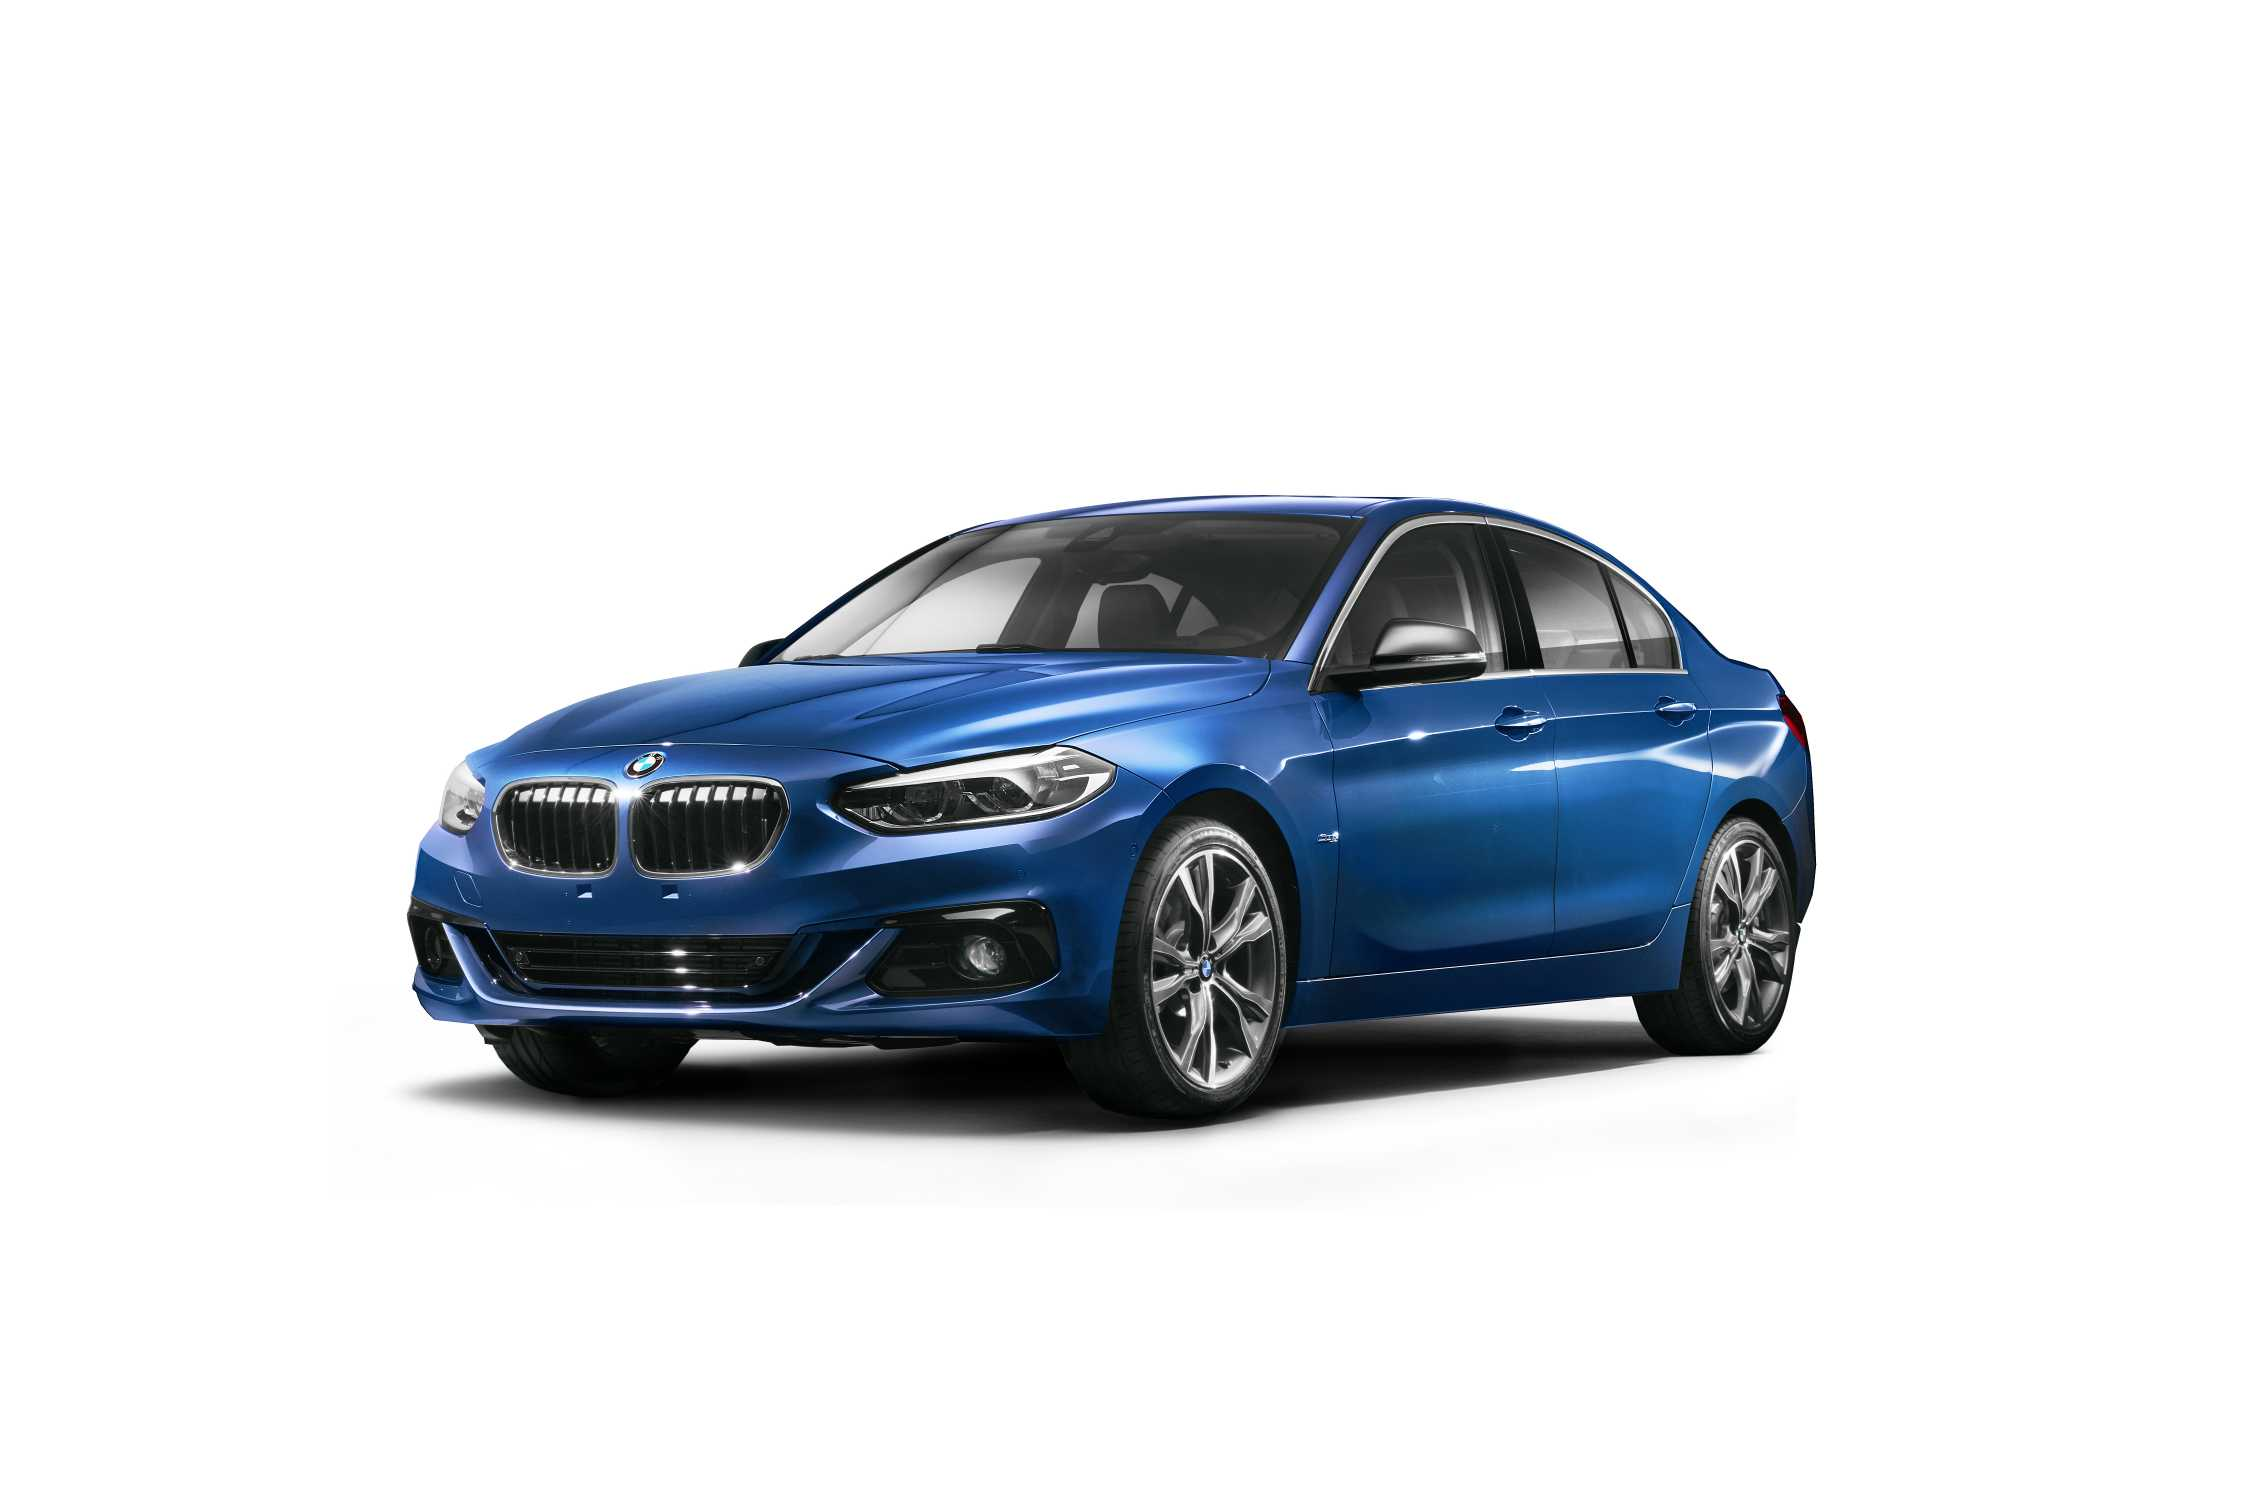 The All New Bmw 1 Series Sedan Exclusively For The Chinese Market